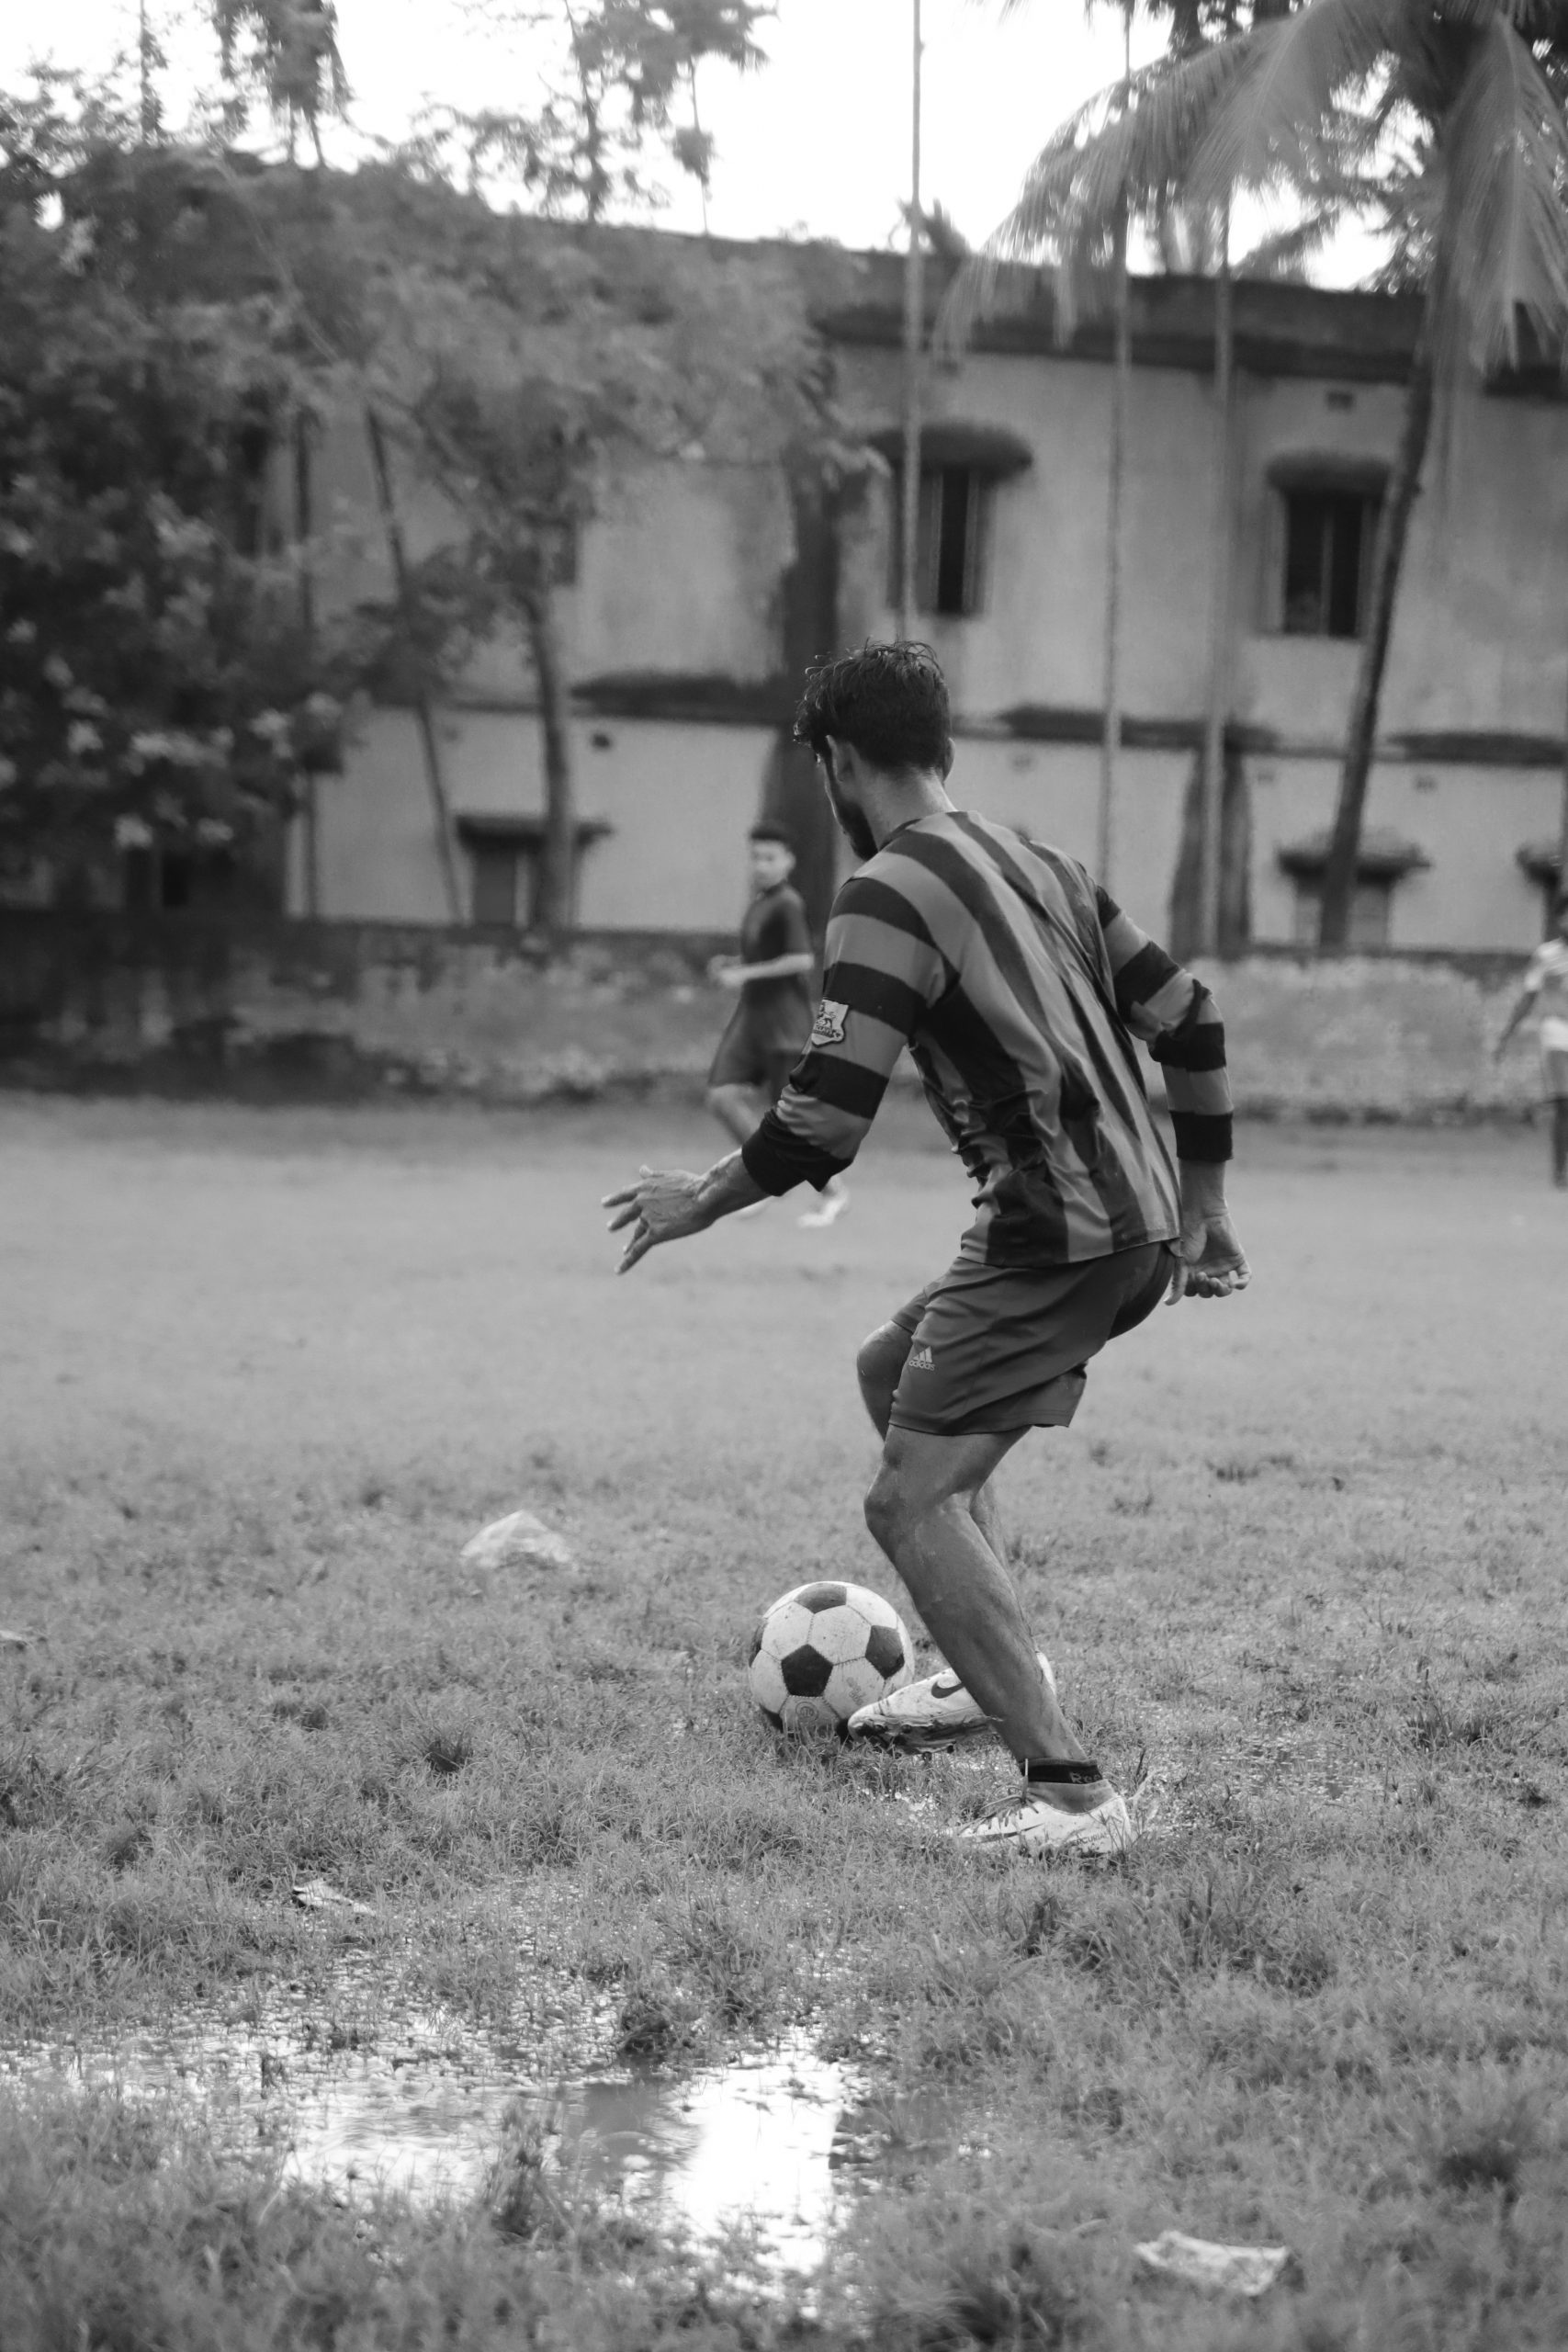 Football player about to kick the ball